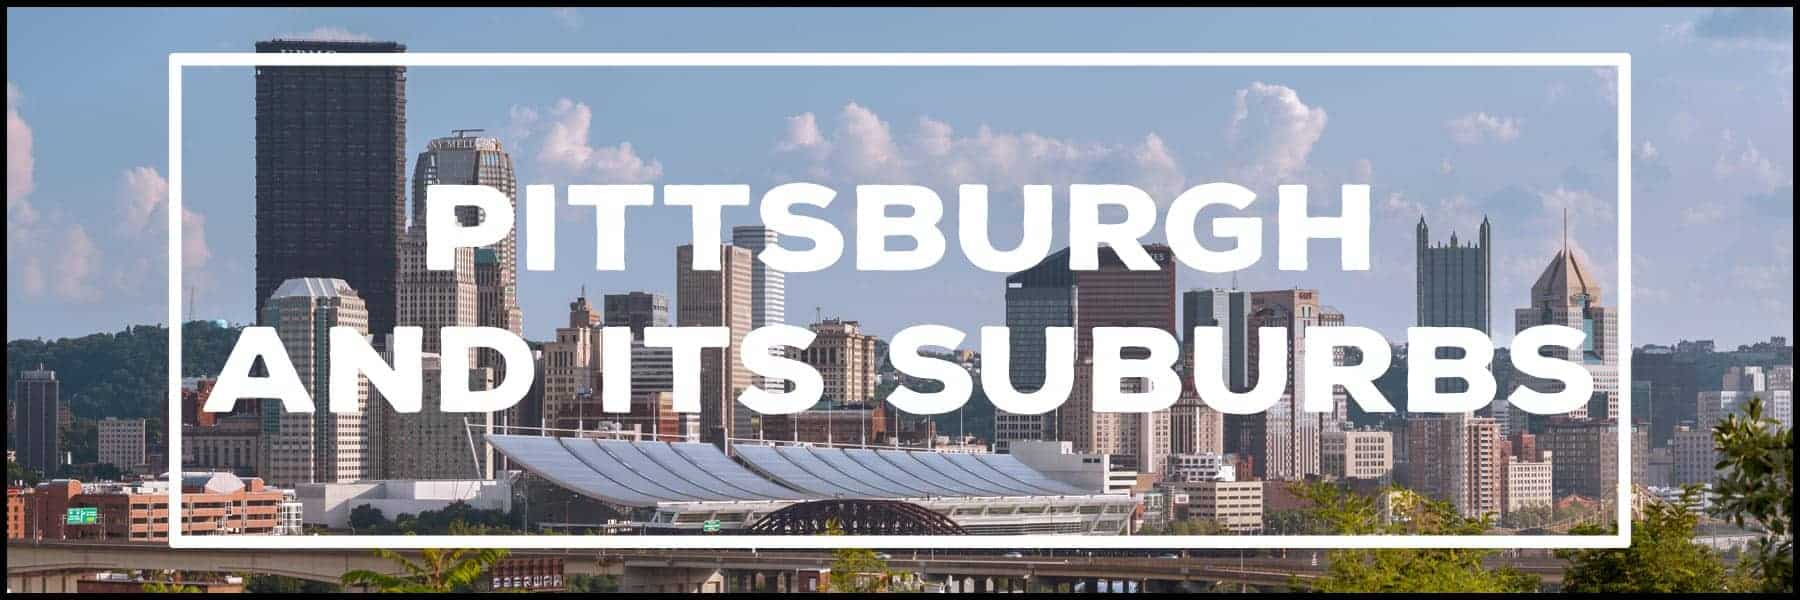 The best things to do in Pittsburgh and its suburbs